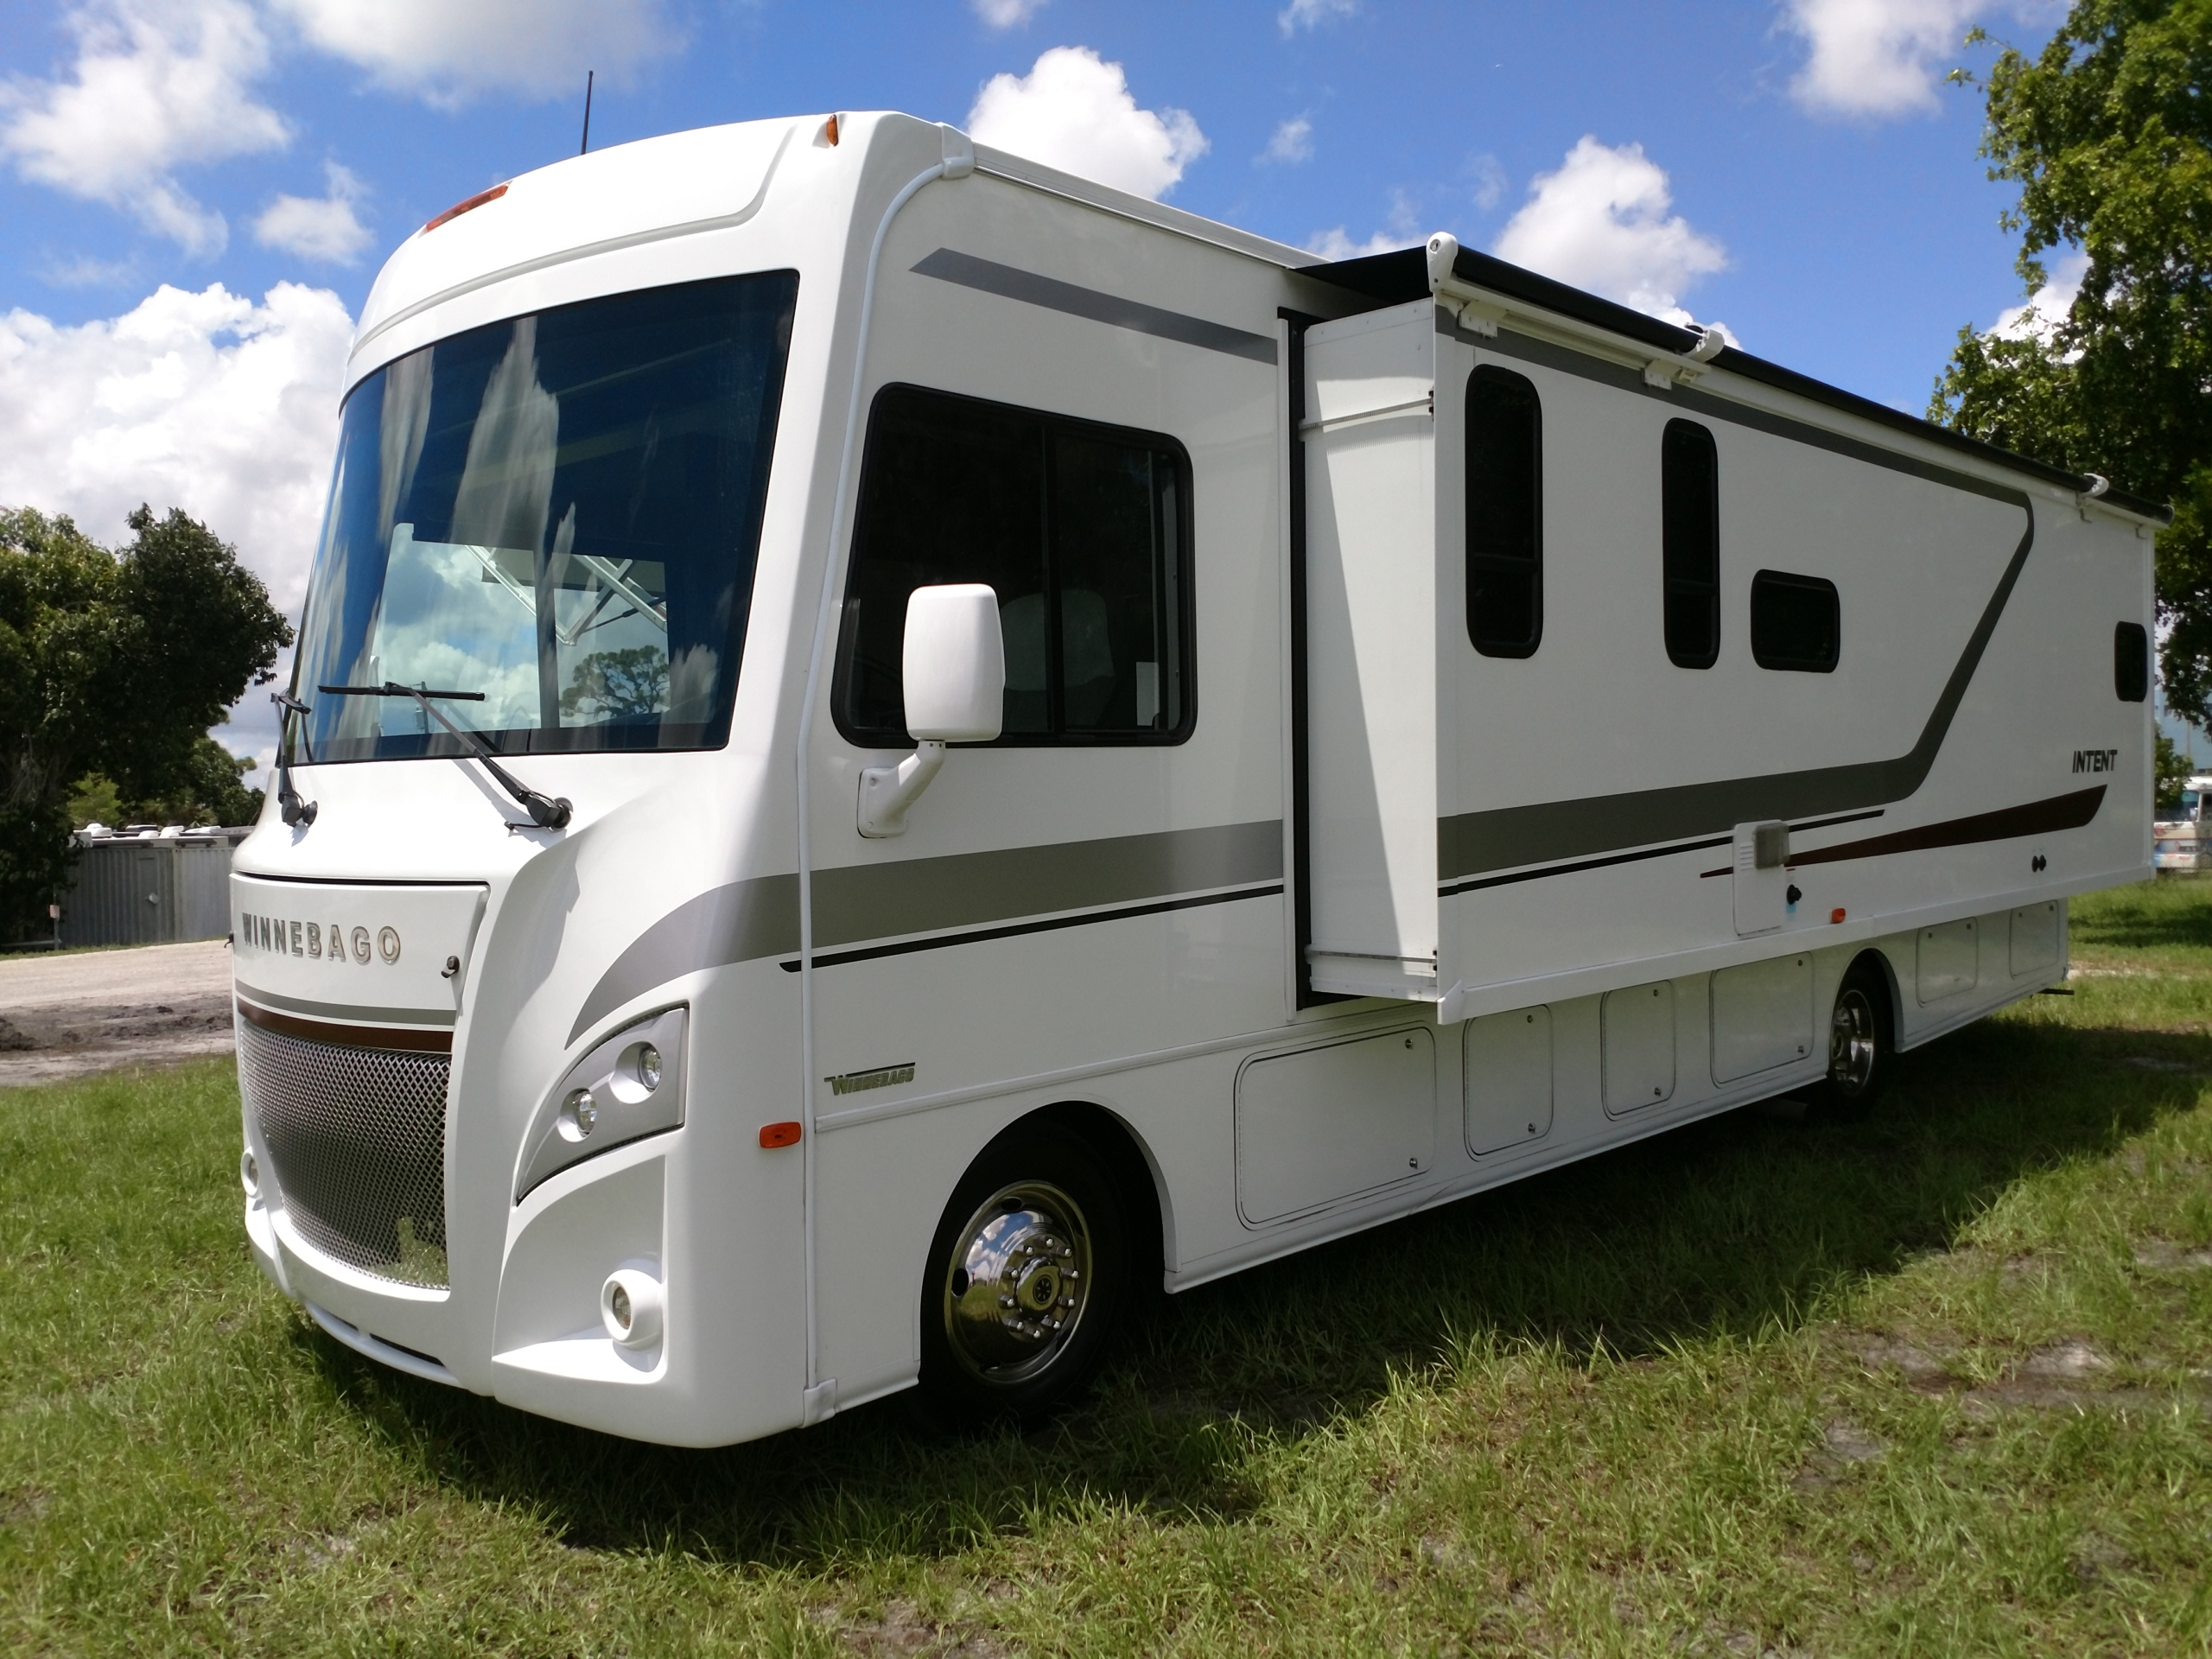 Importance of RV Service in Fort Lauderdale